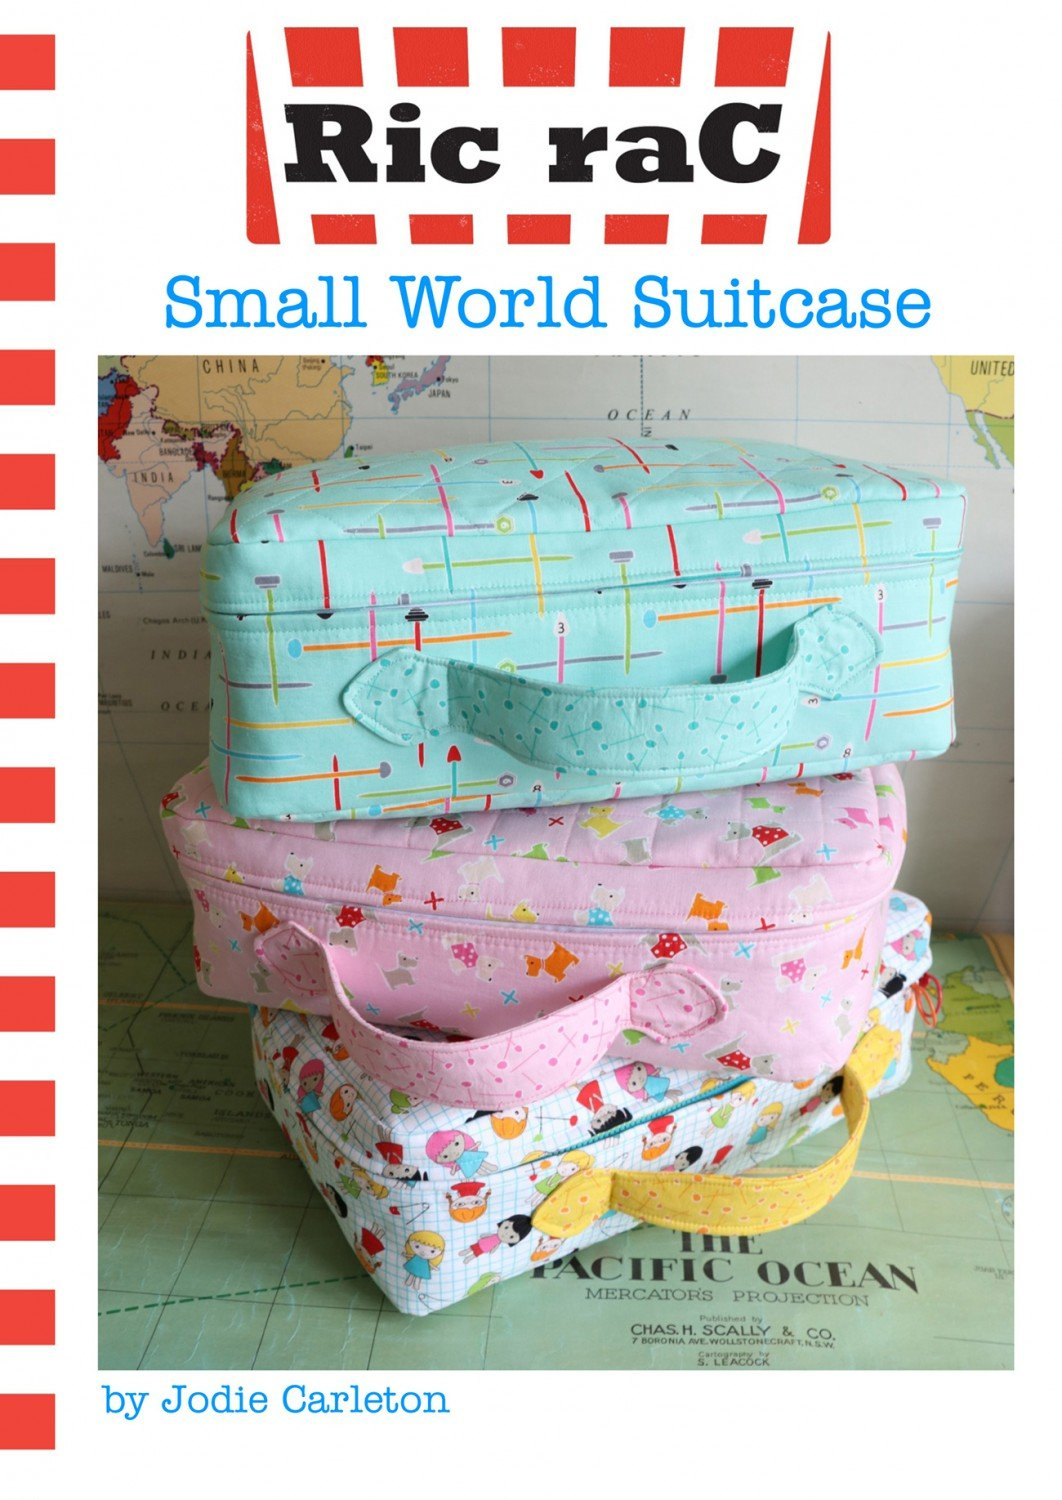 Small World Suitcase